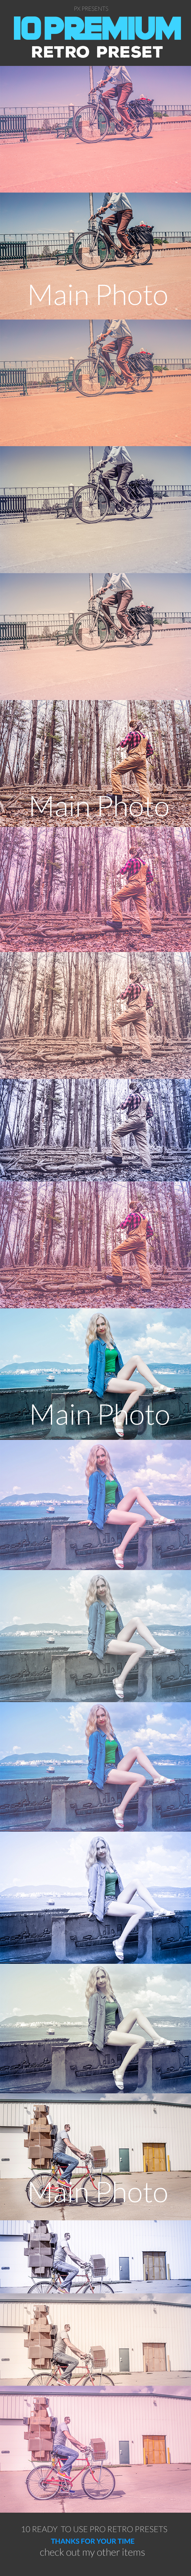 GraphicRiver 10 Retro Premium Lightroom Presets 20556597